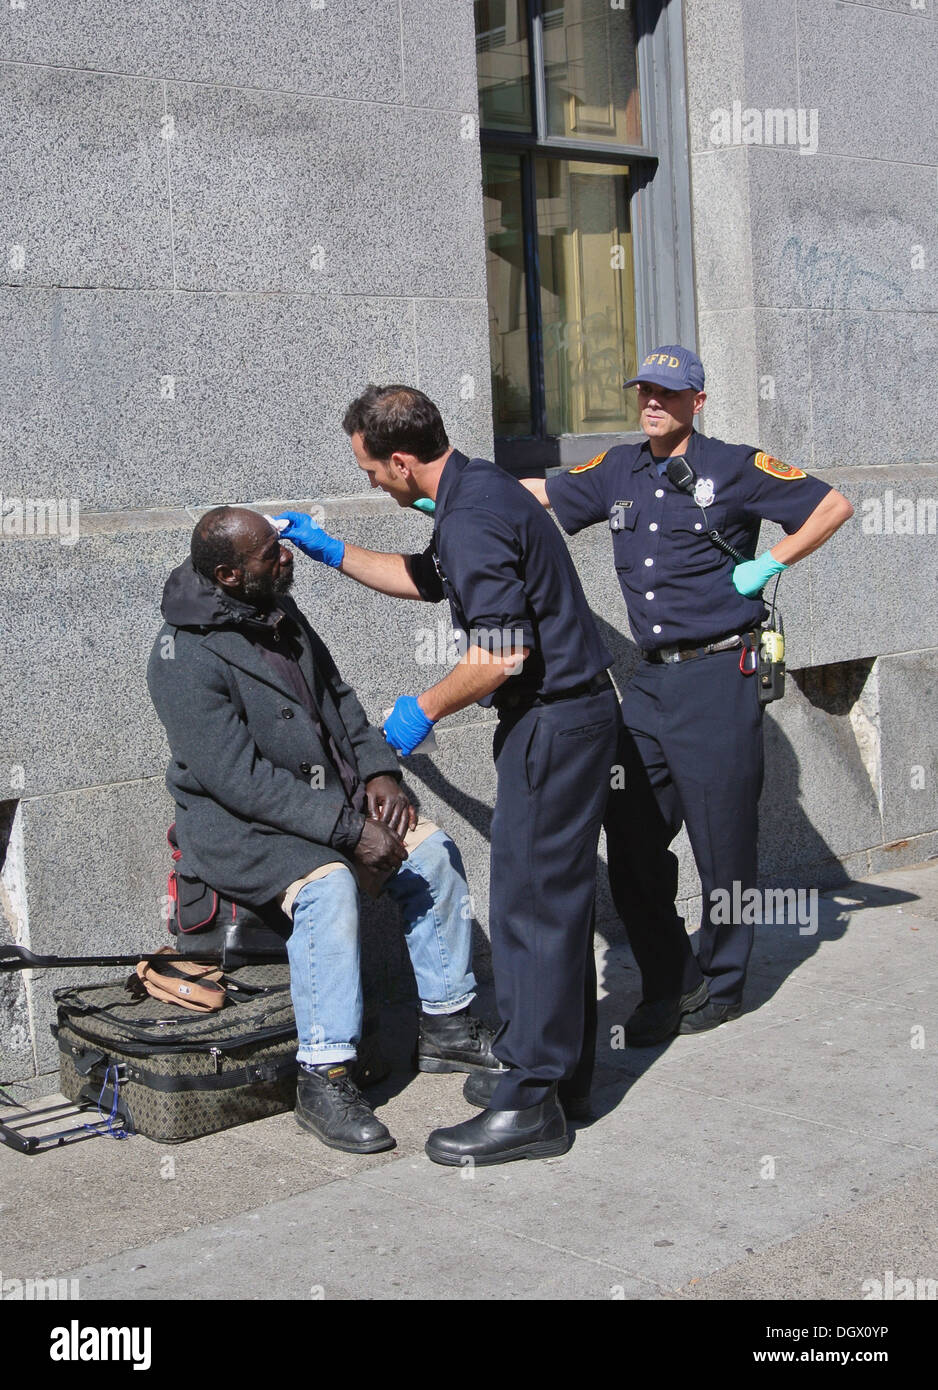 San Francisco policemen provide first aid to homeless man in the Tenderloin - Stock Image